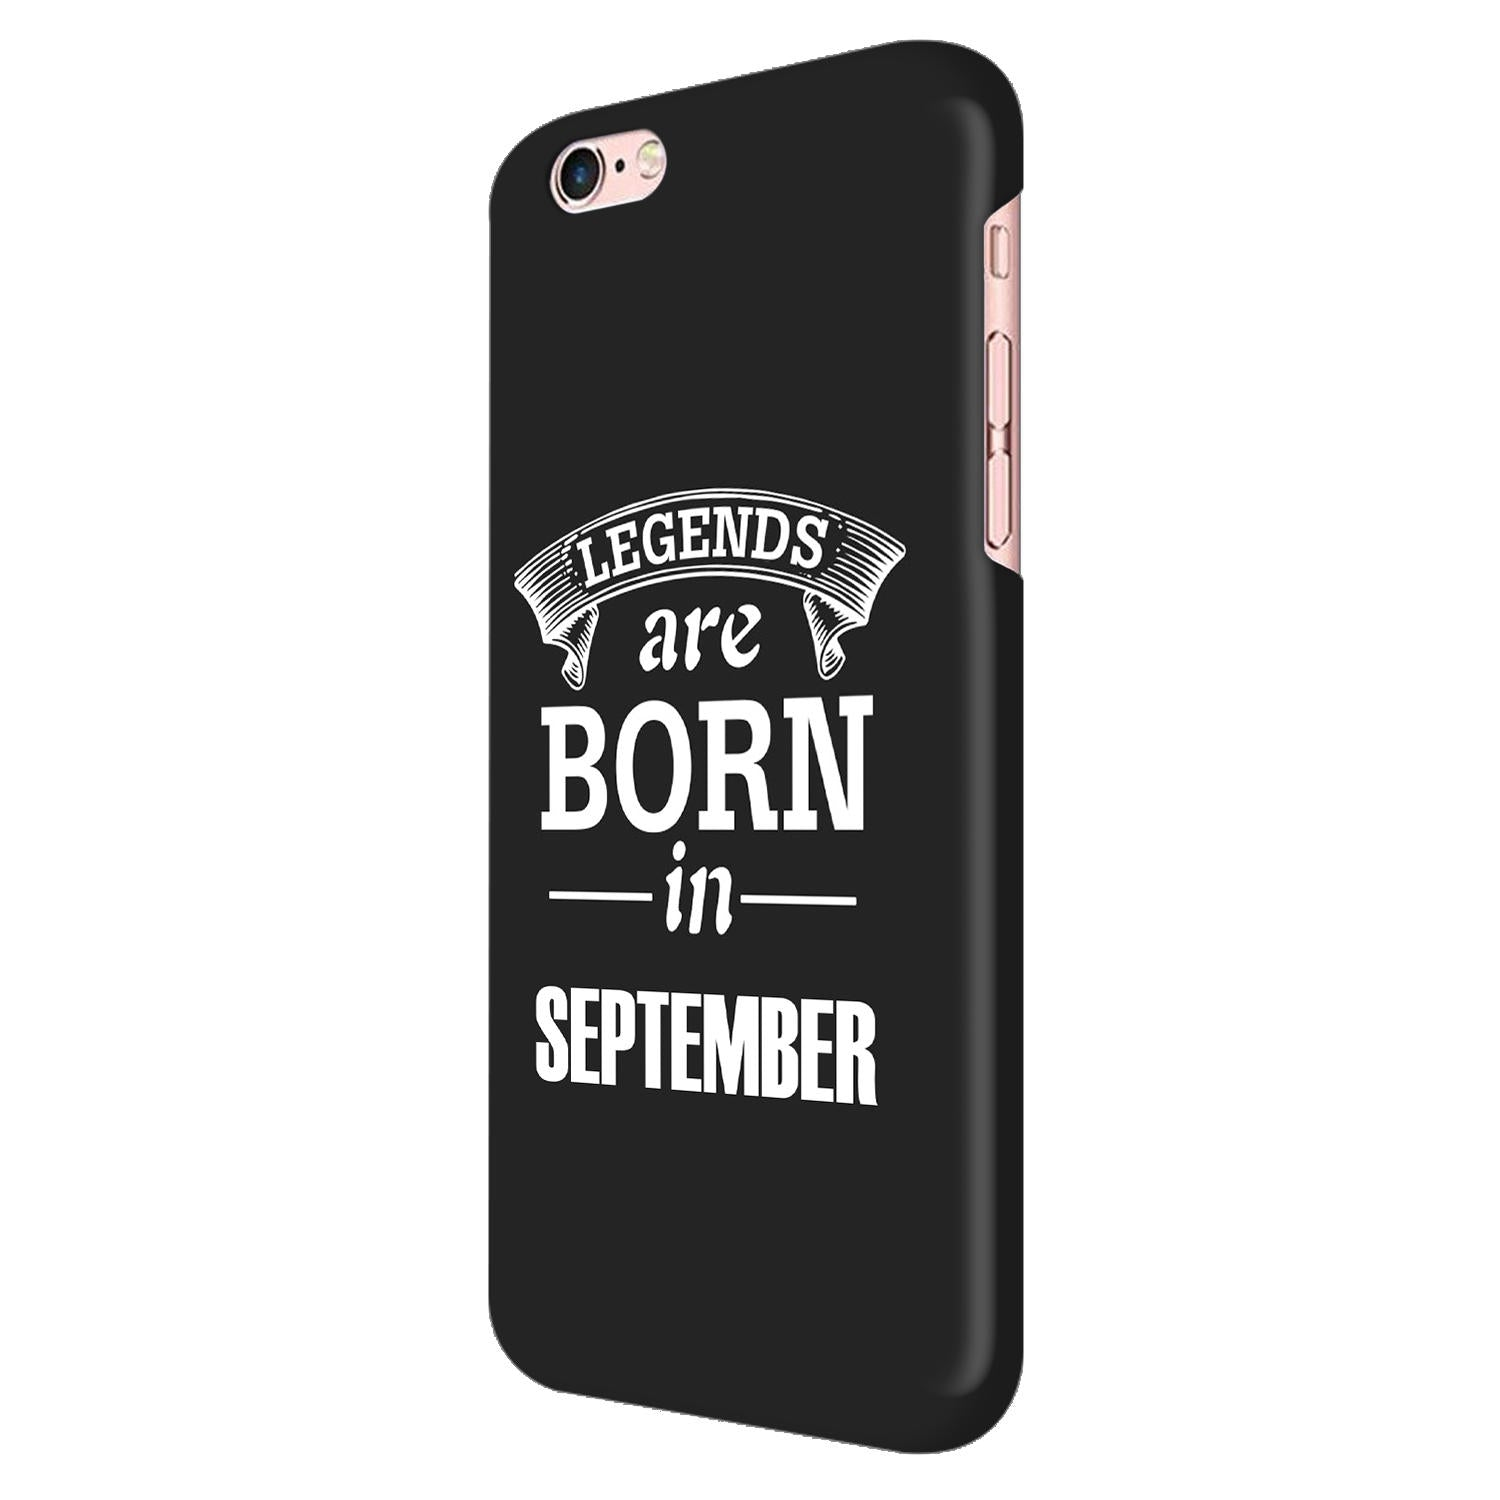 Legends September iPhone 6 Mobile Cover Case